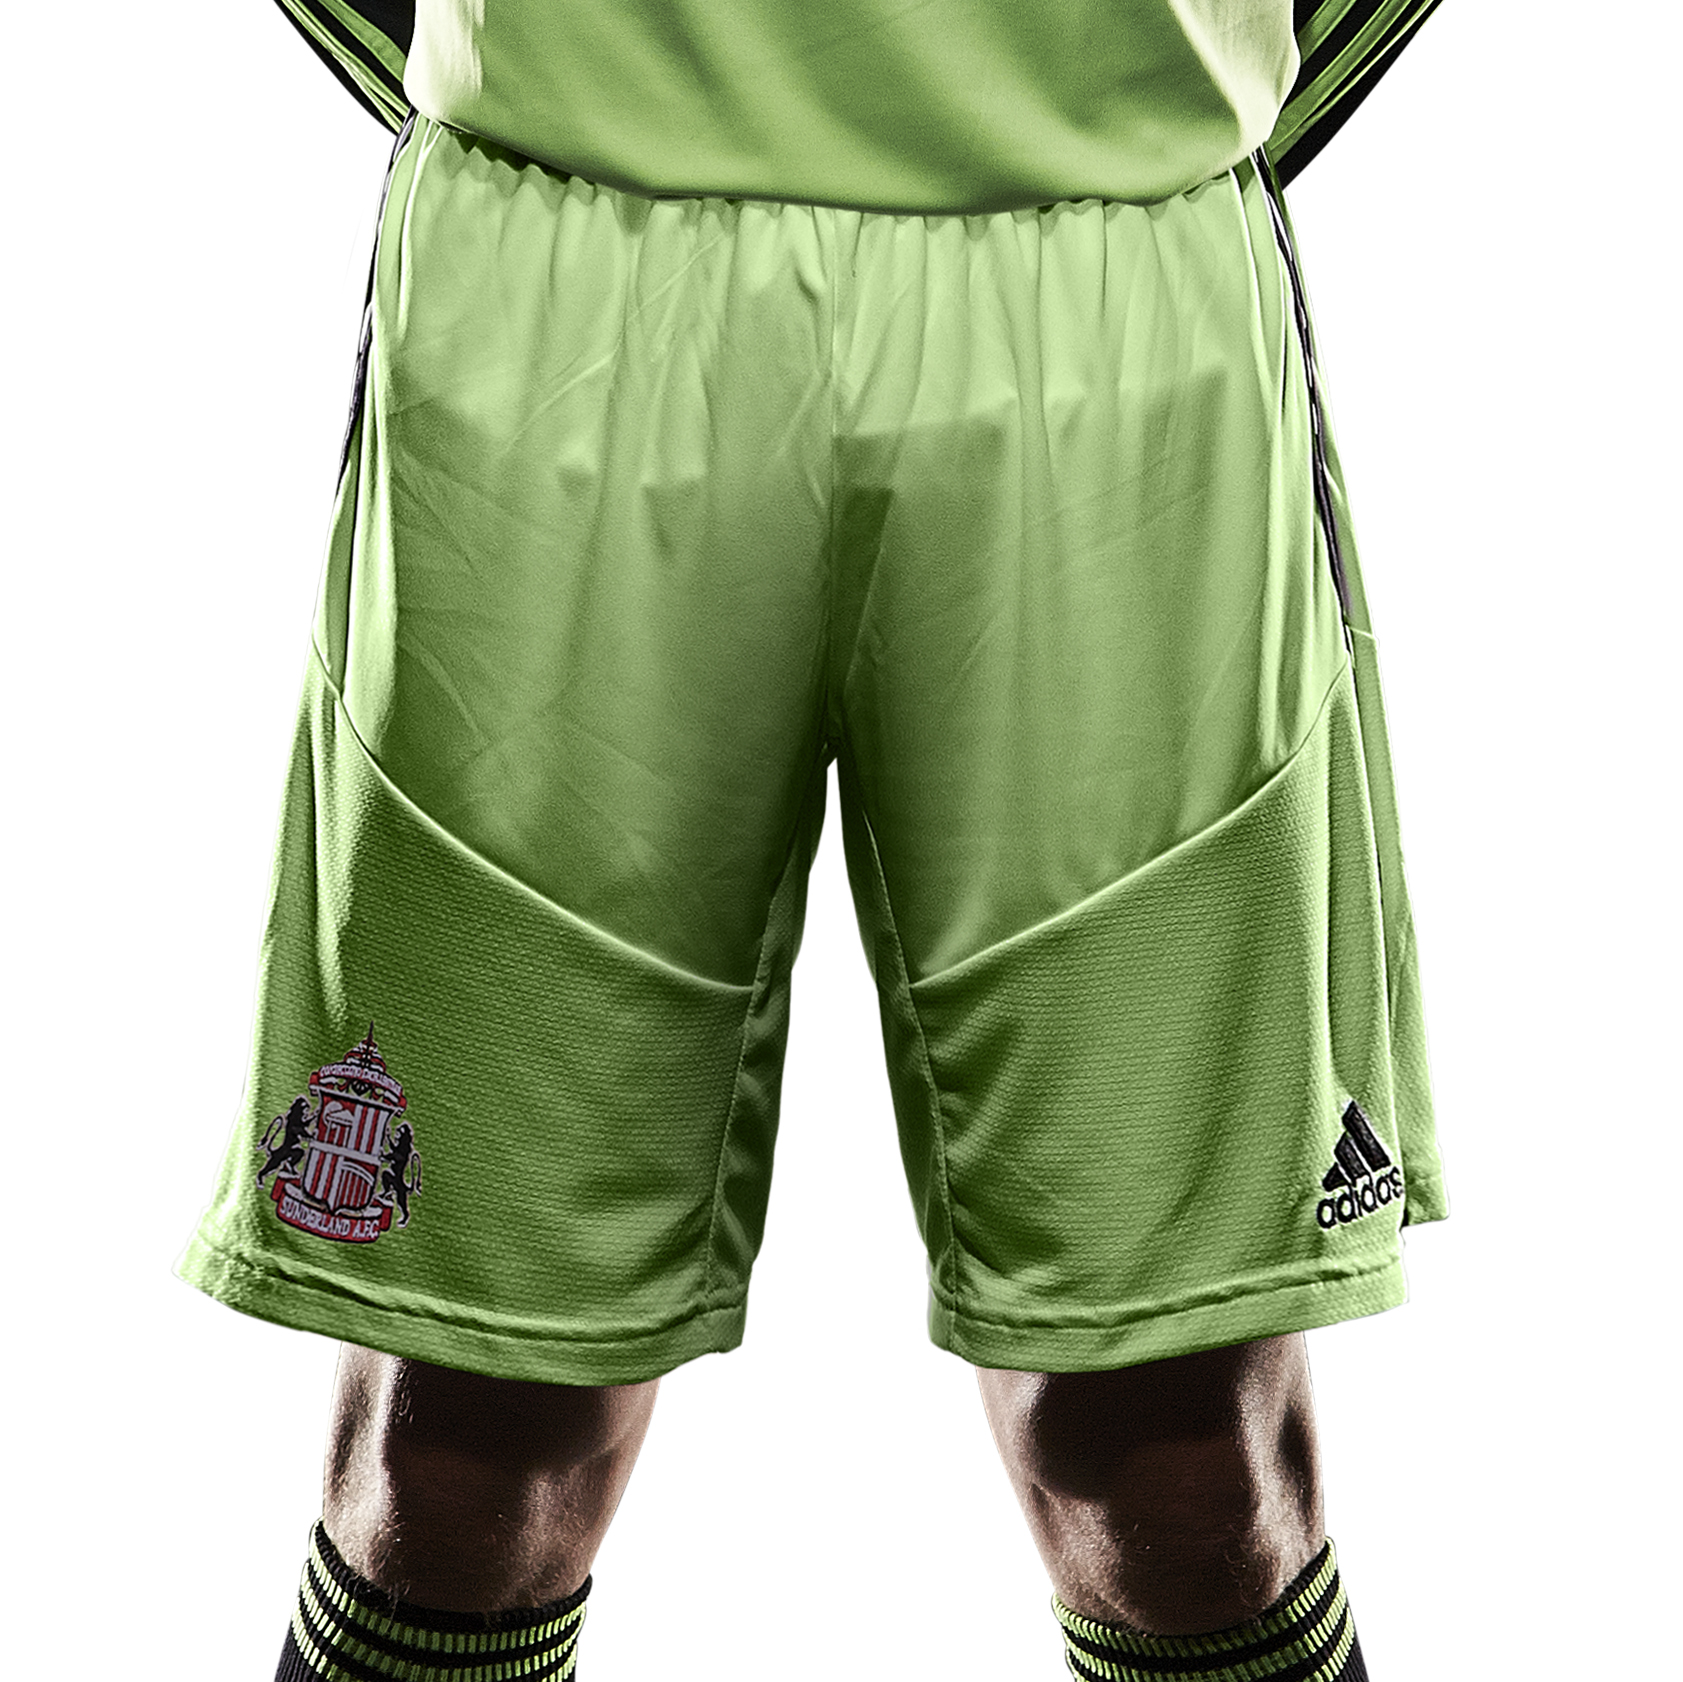 Sunderland Home Goalkeeper Short 2013/14